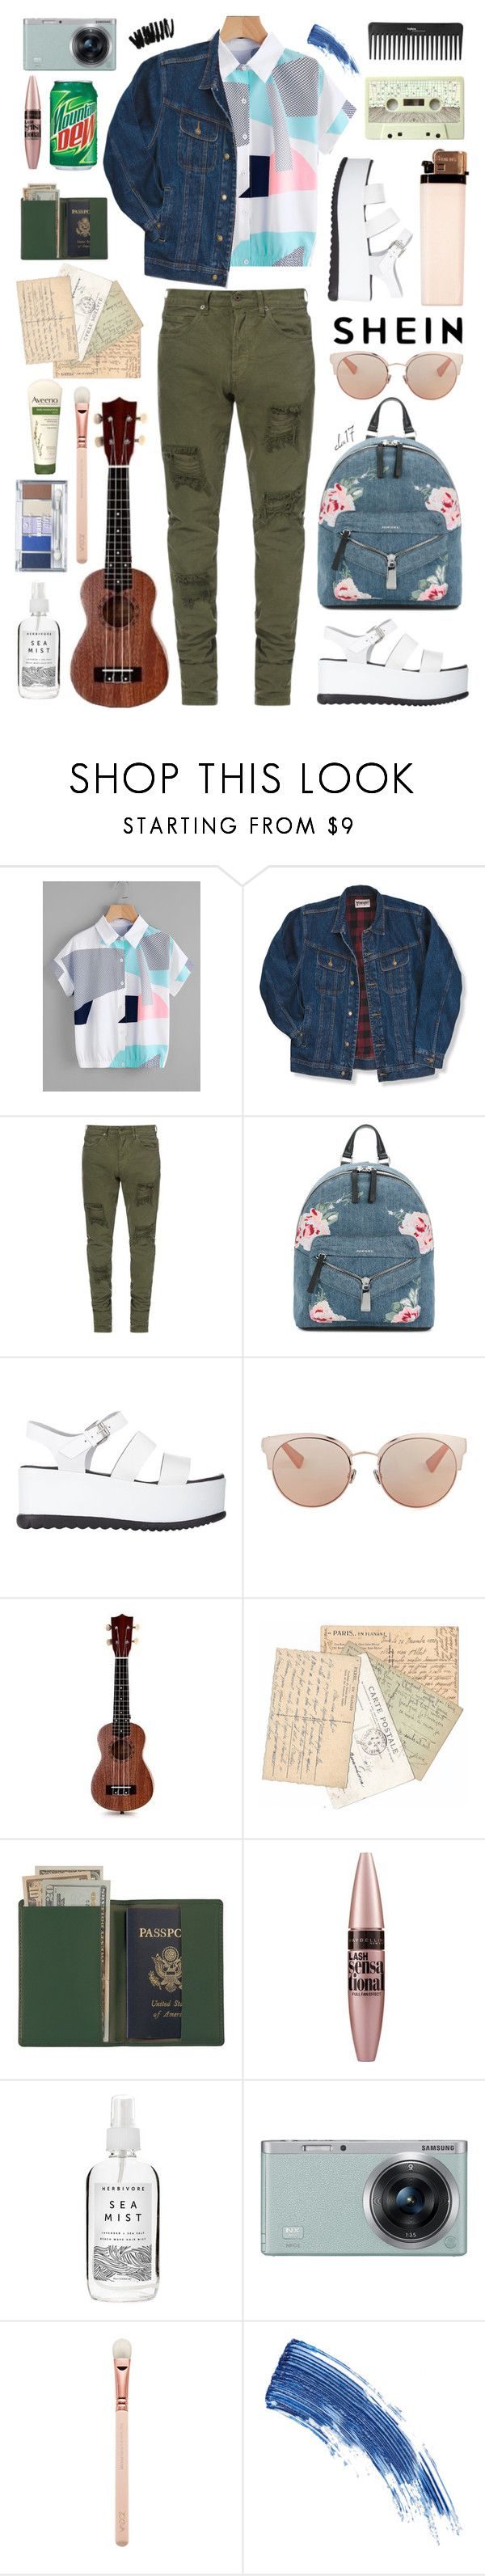 """""""SheIn 3"""" by creartivechild ❤ liked on Polyvore featuring Wrangler, Diesel, Barneys New York, Christian Dior, Royce Leather, Sephora Collection, Maybelline, Herbivore, Samsung and Aveeno"""